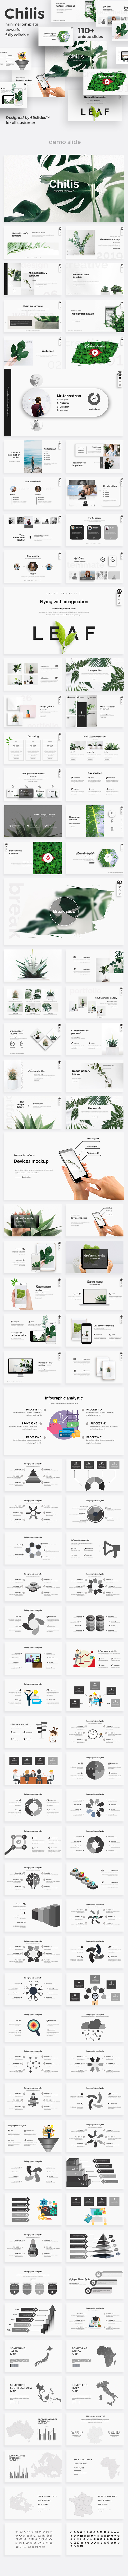 Chilis Minimal Powerpoint Template - Creative PowerPoint Templates